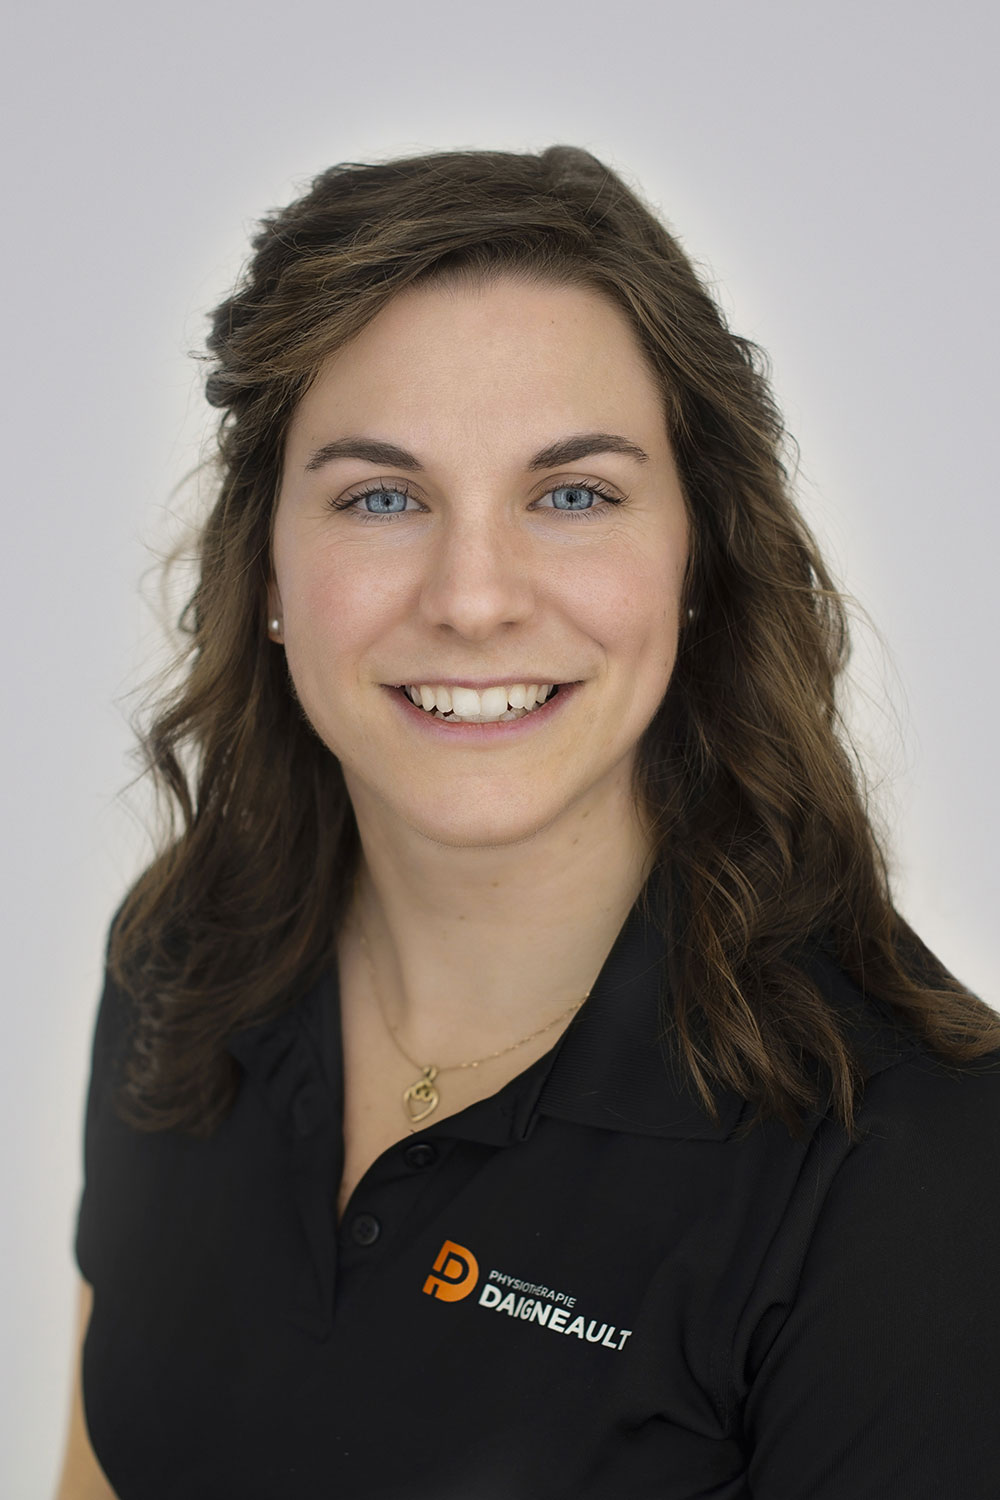 Laury-Normandin-physiotherapie-daigneault